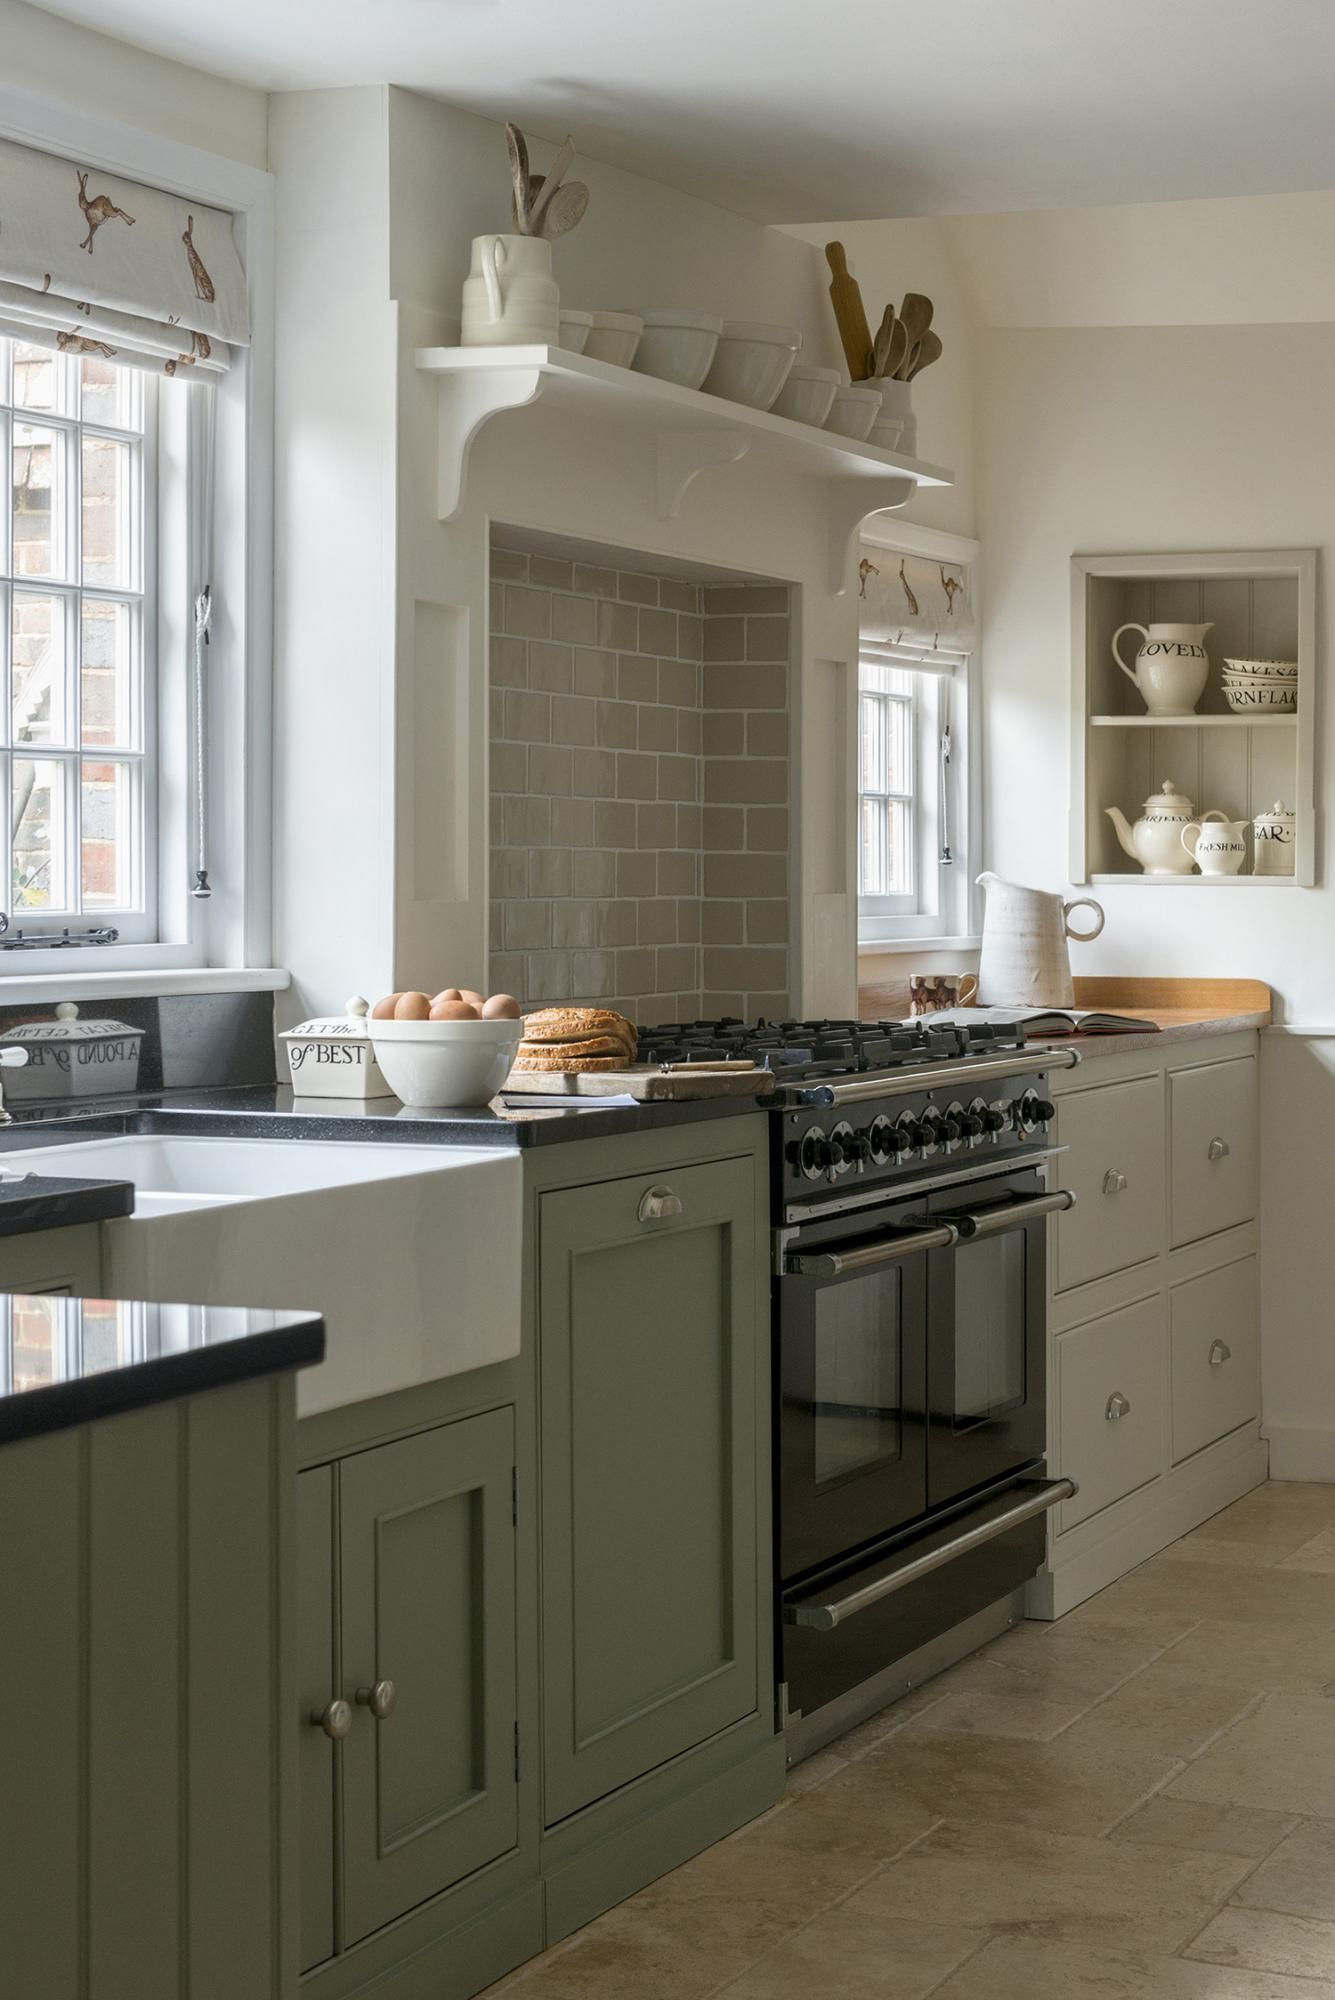 The Most Captivating Simple Kitchen Design For Middle ...